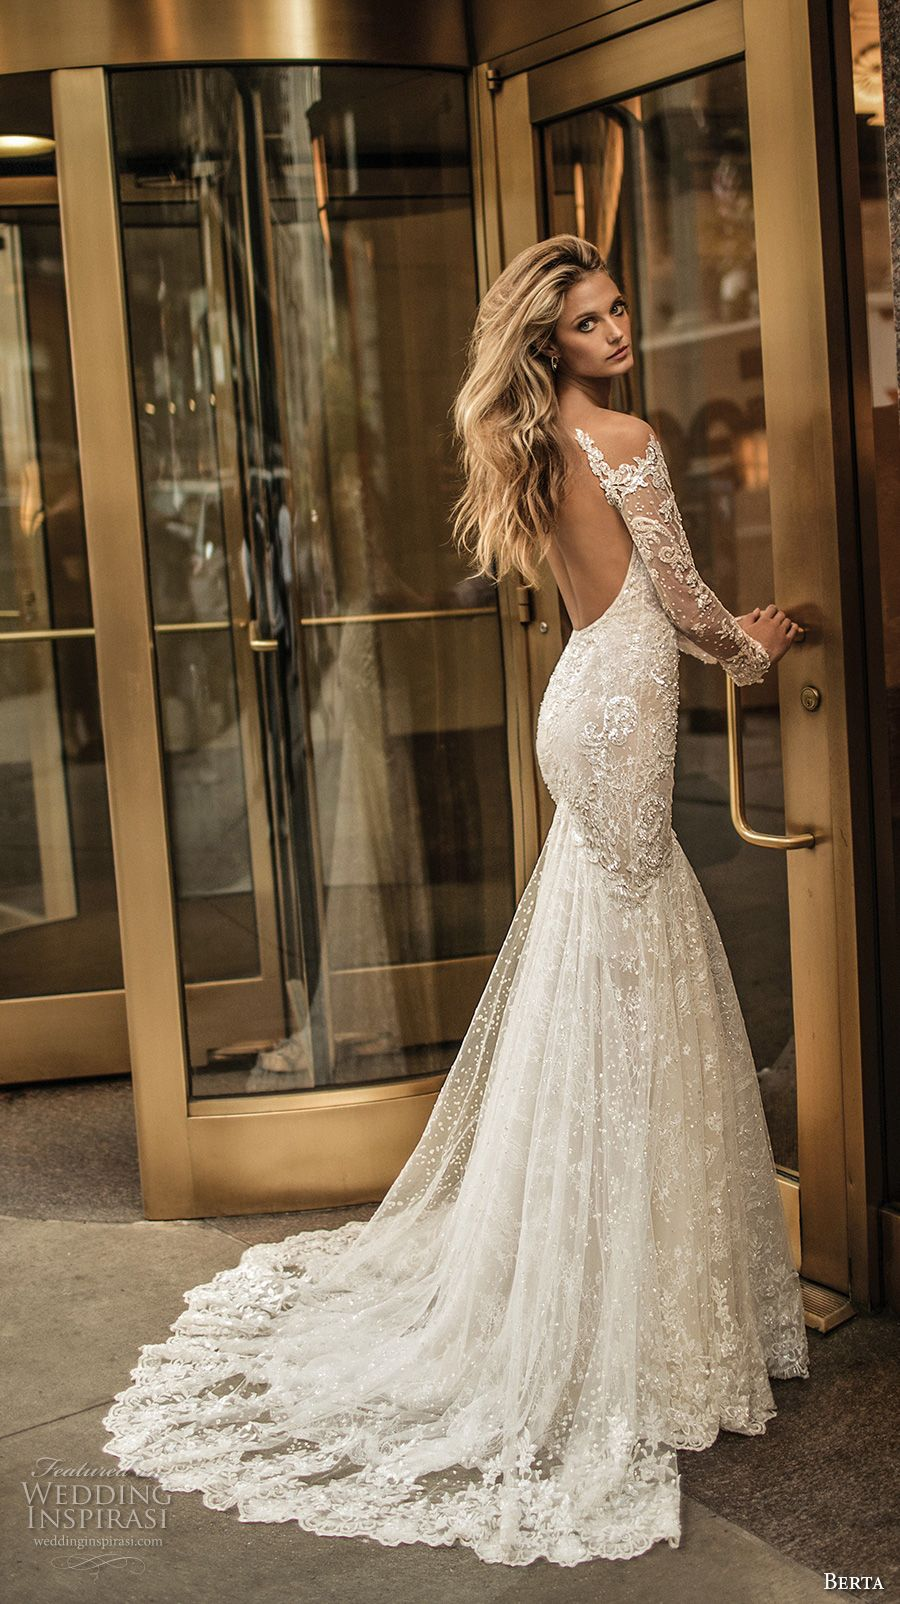 Used berta wedding dress  Berta Fall  Wedding Dresses  Chapel train Wedding dress and